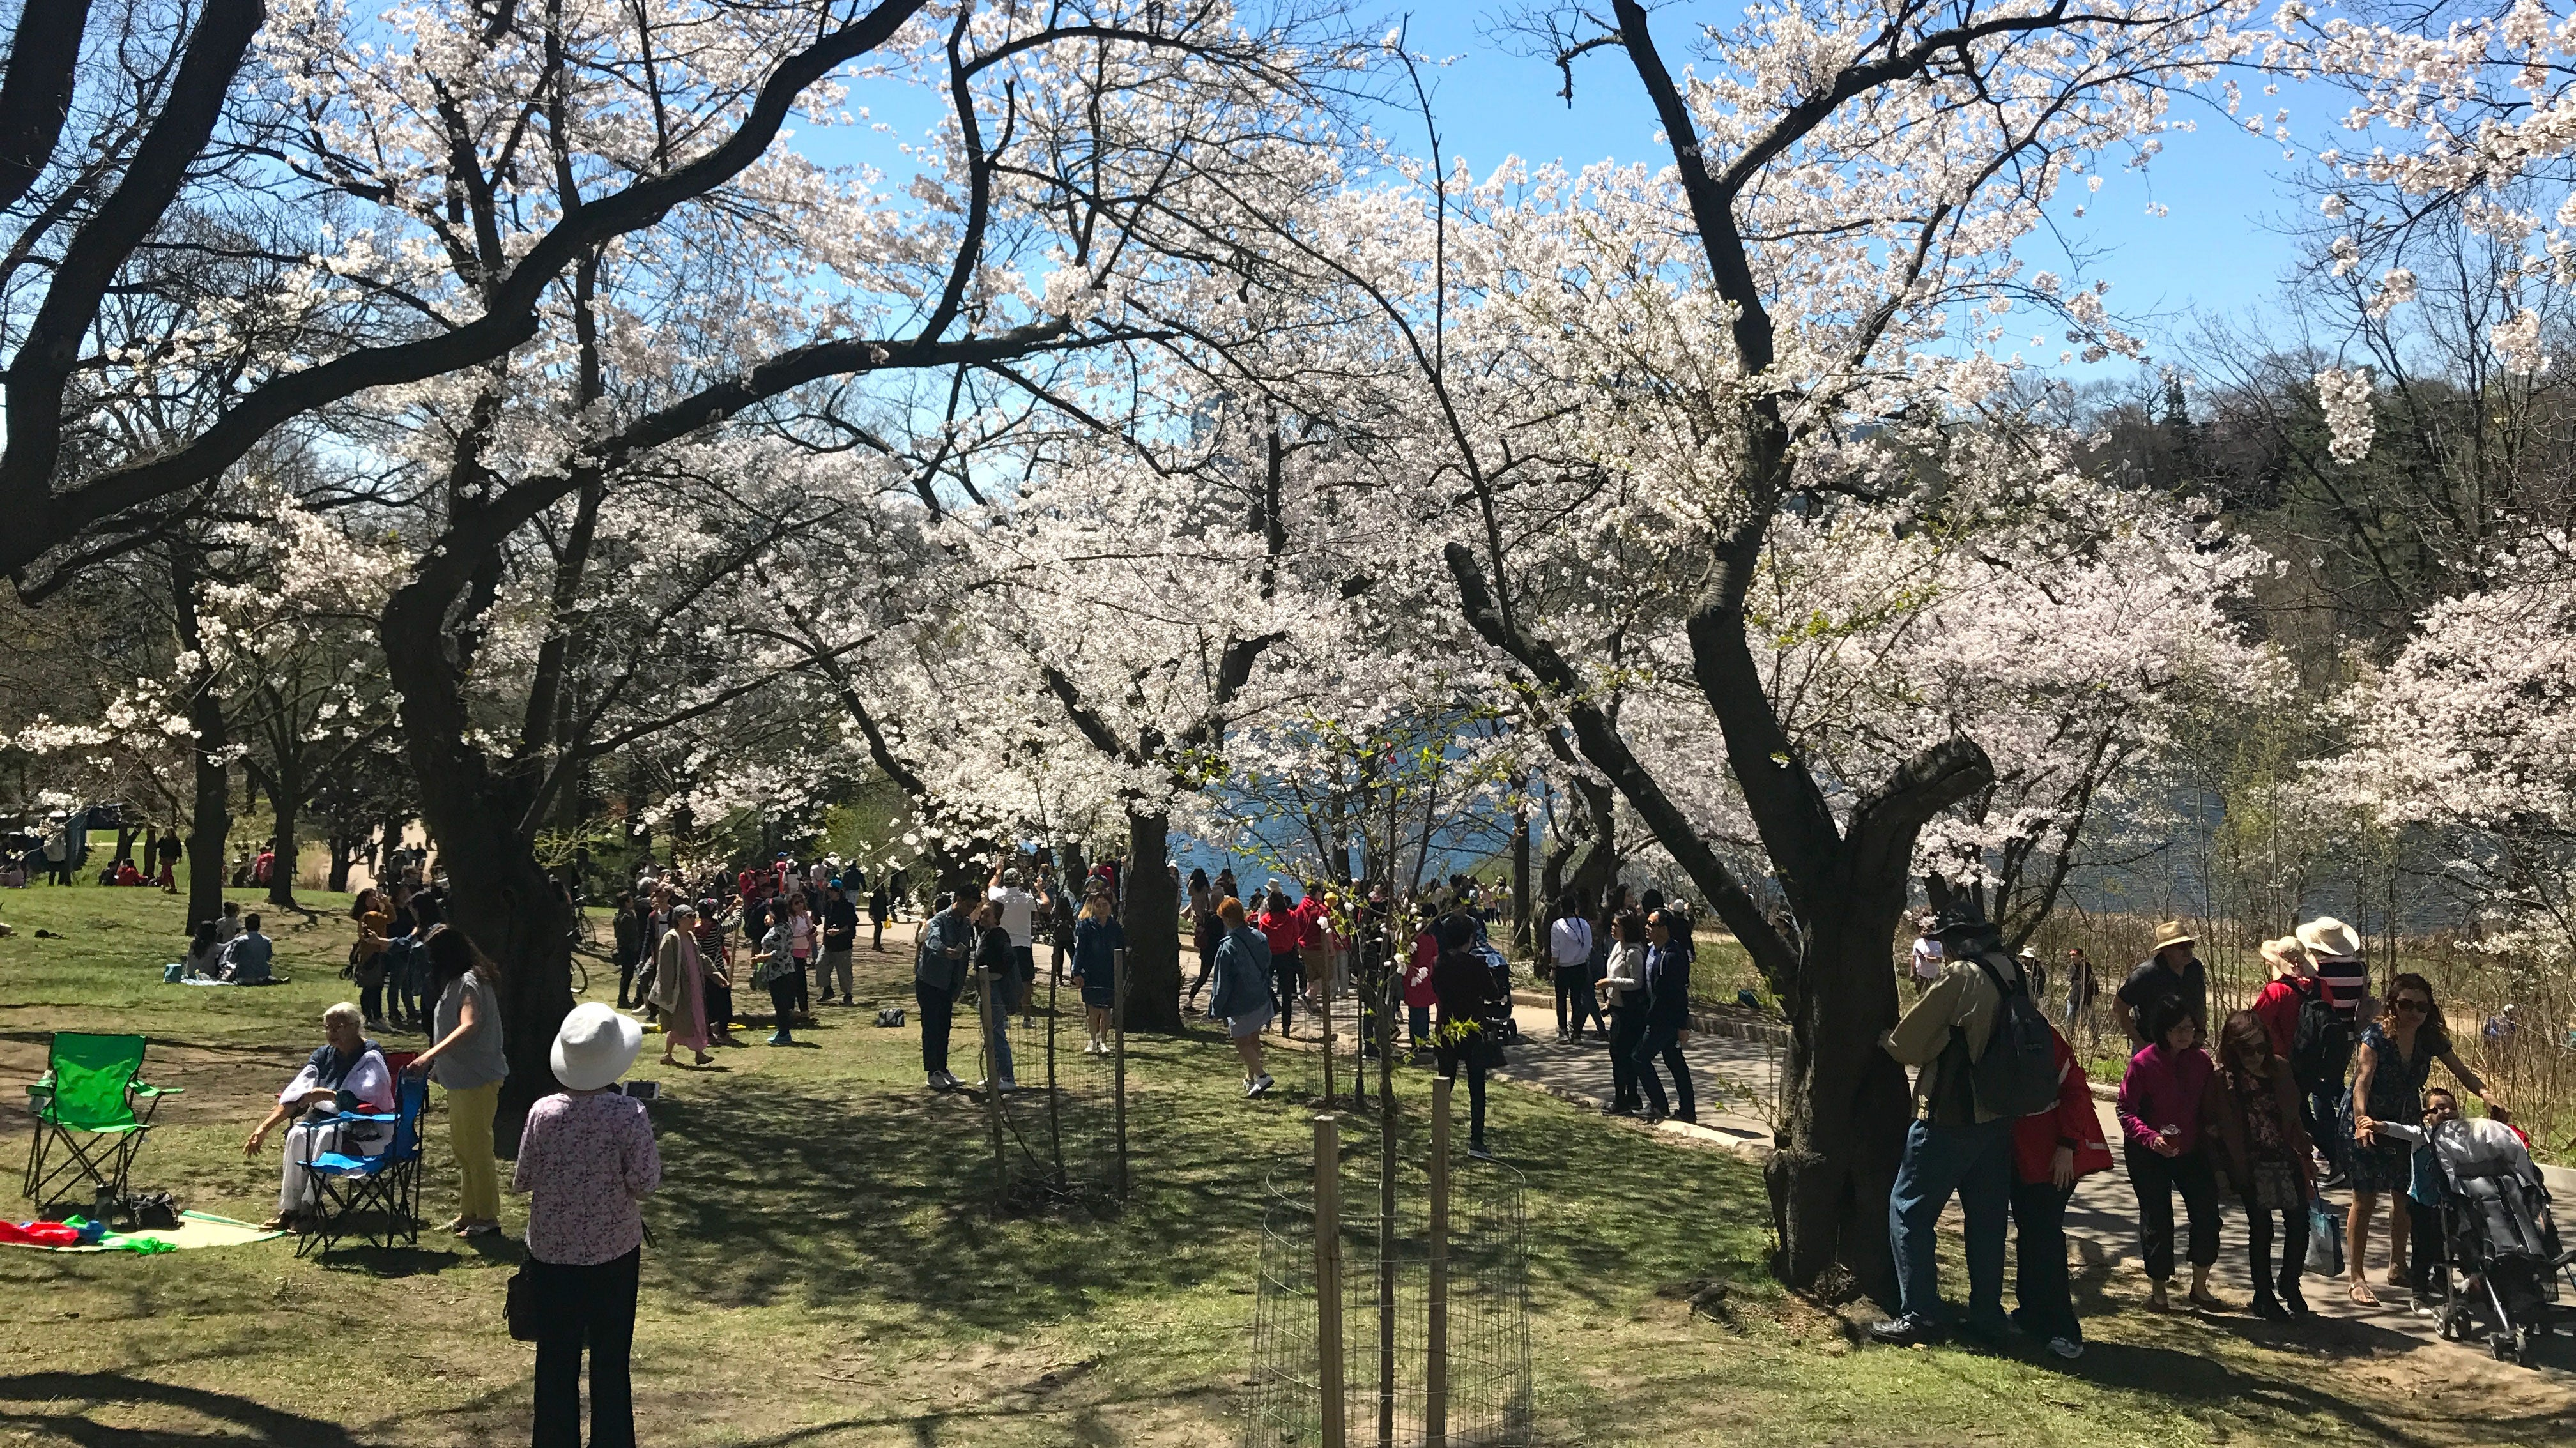 Toronto's Cherry Blossoms Are in Full Bloom